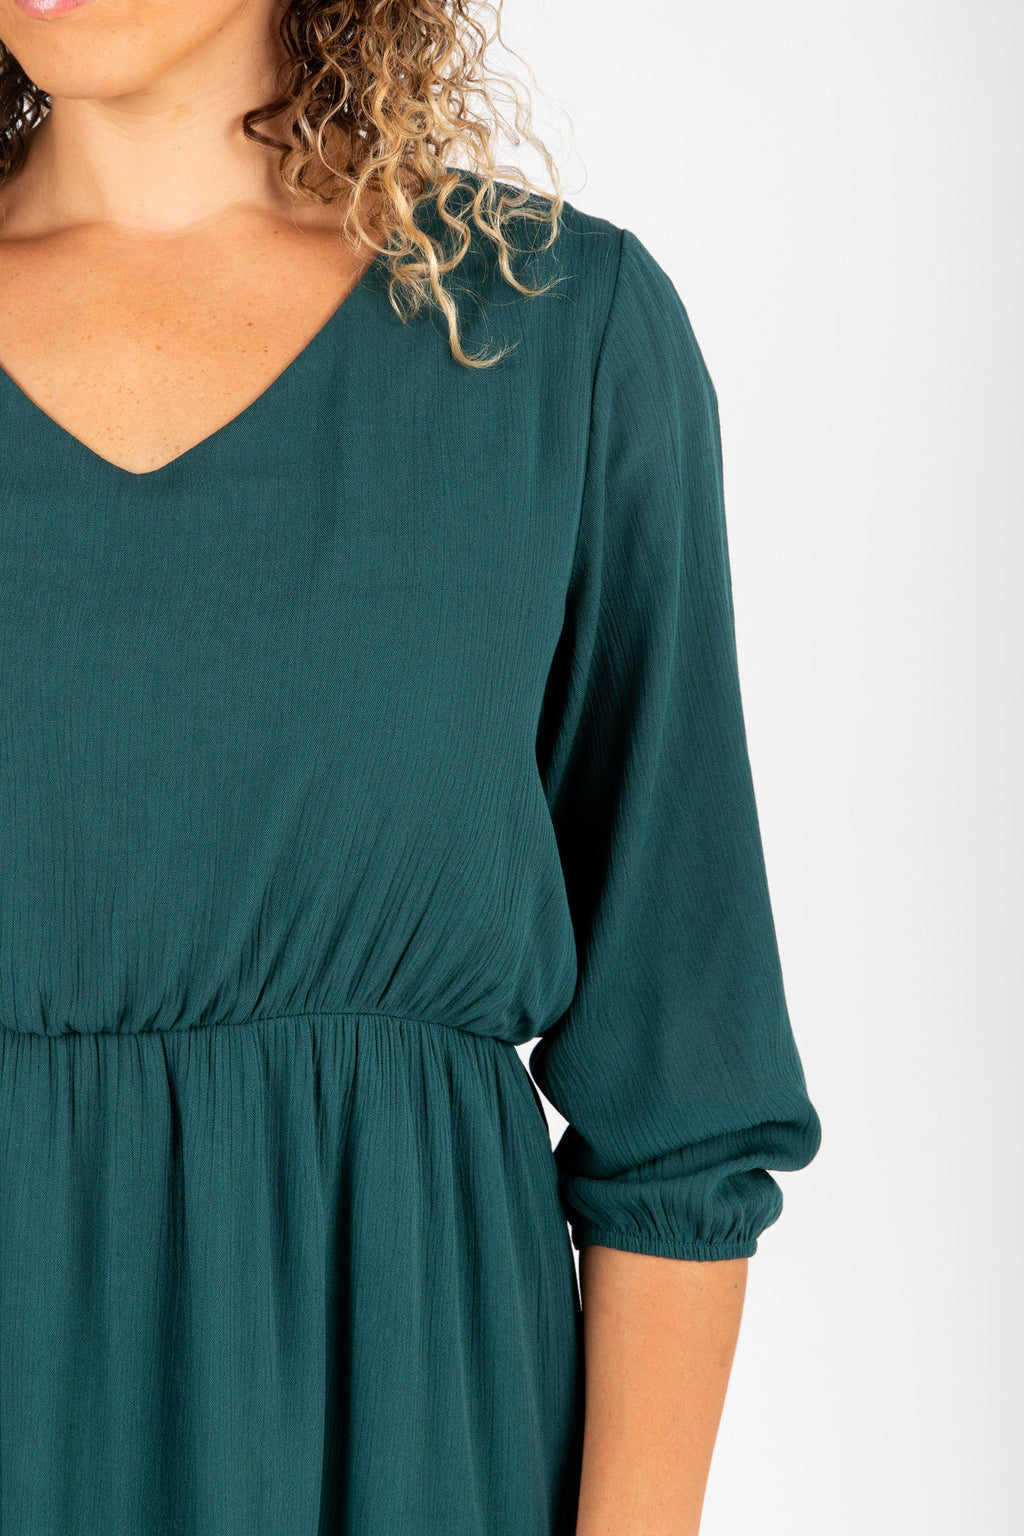 The Wesley Dress in Hunter Green, studio shoot; front view